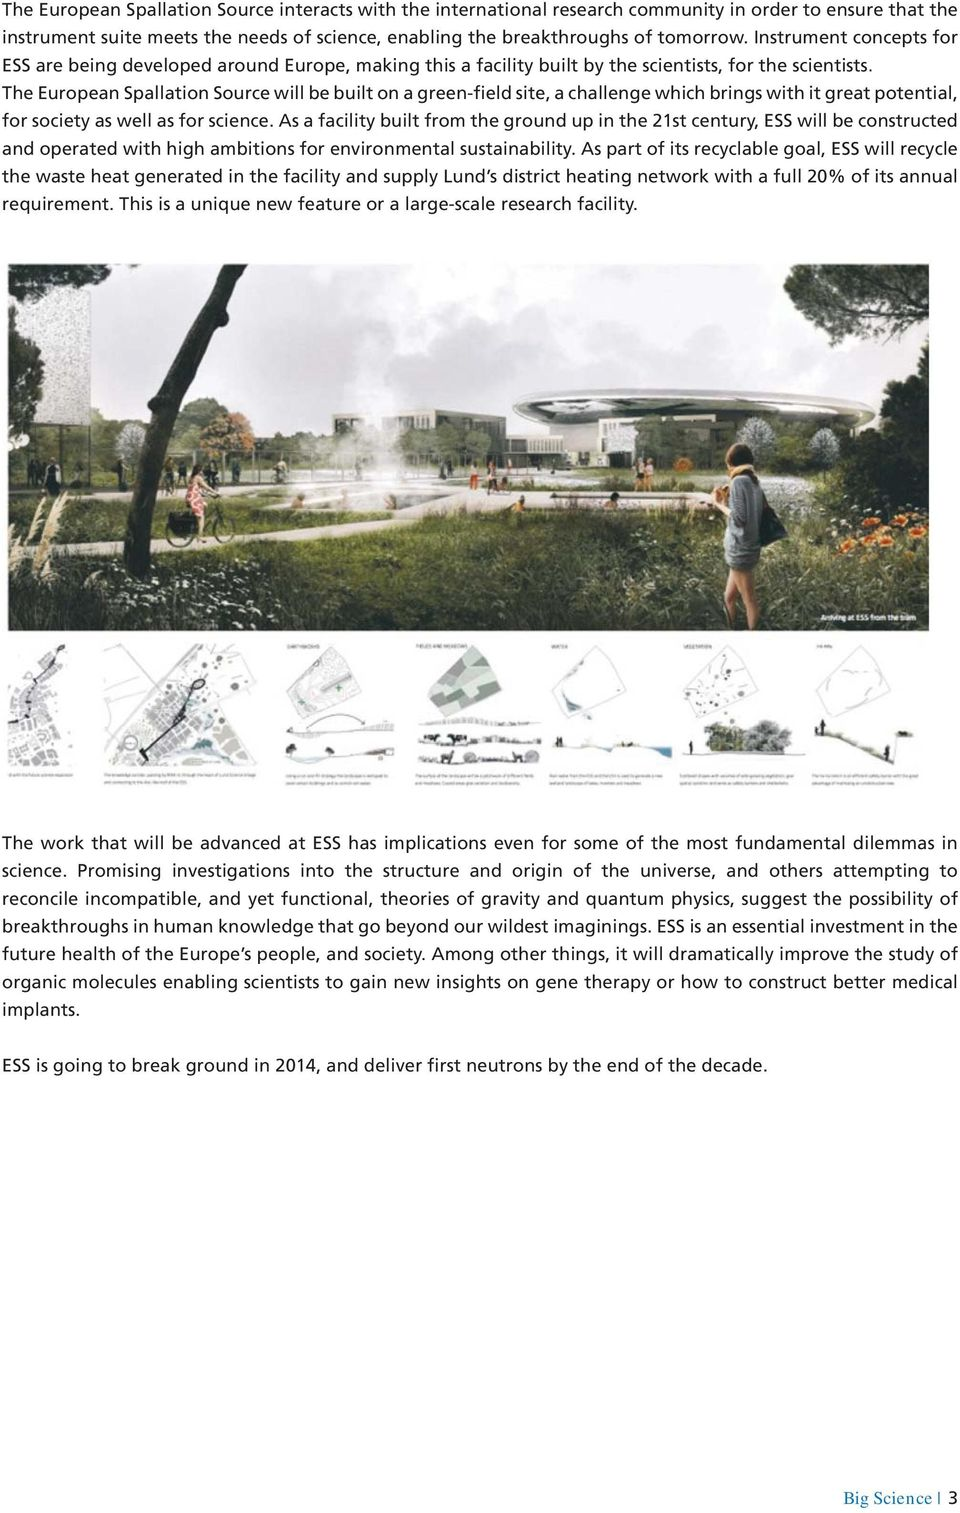 The European Spallation Source will be built on a green-field site, a challenge which brings with it great potential, for society as well as for science.